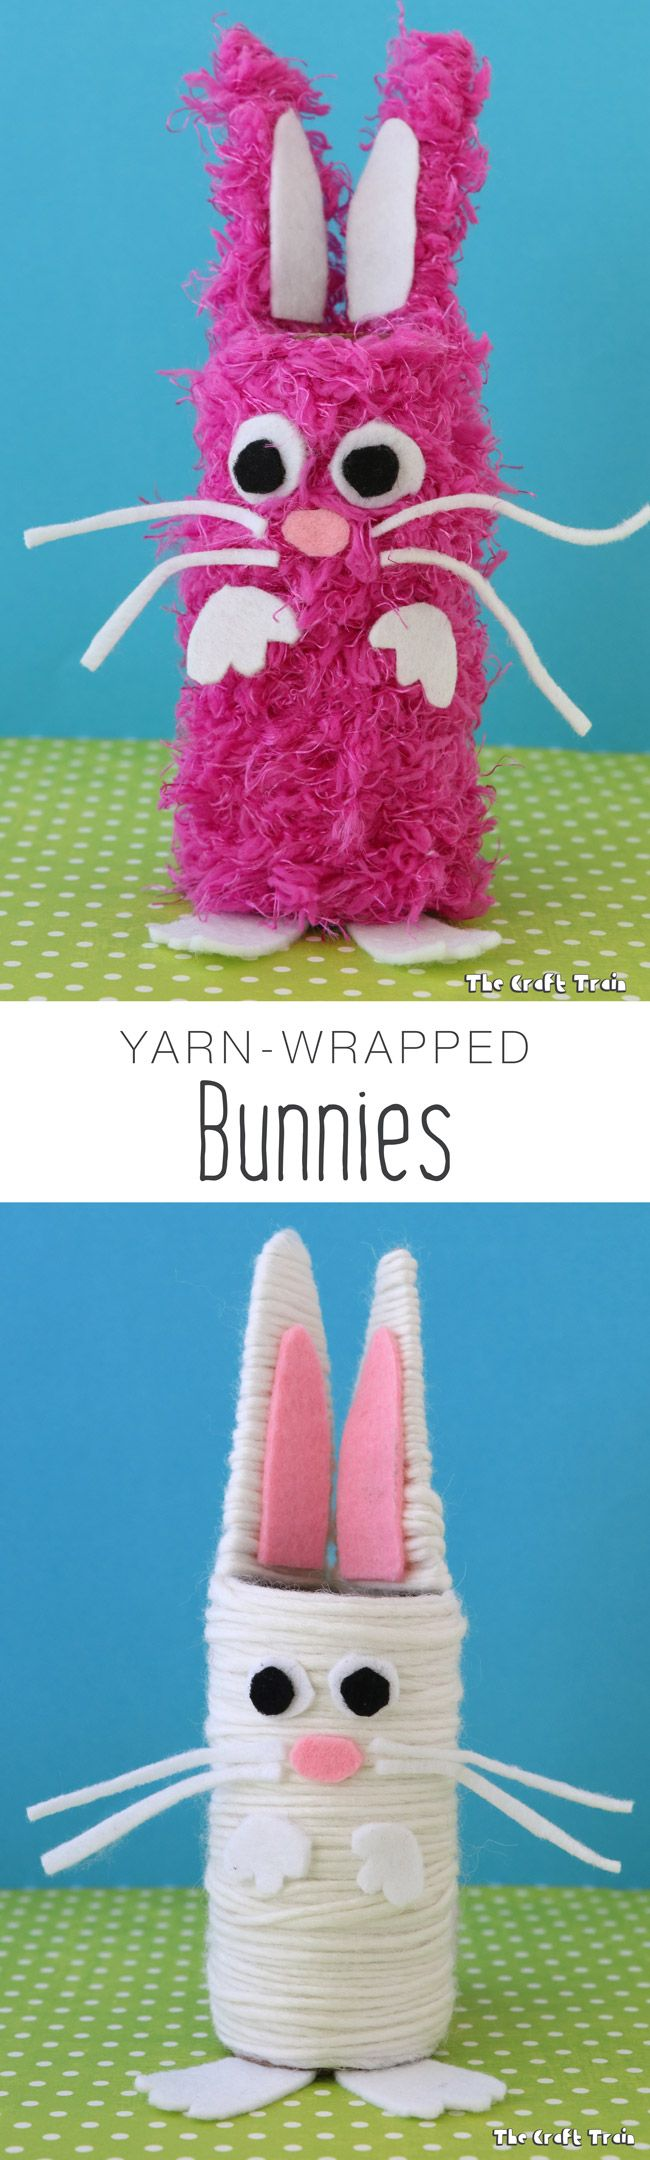 Easter bunny craft made from cardboard tubes and fluffy yarn – so cute and easy!